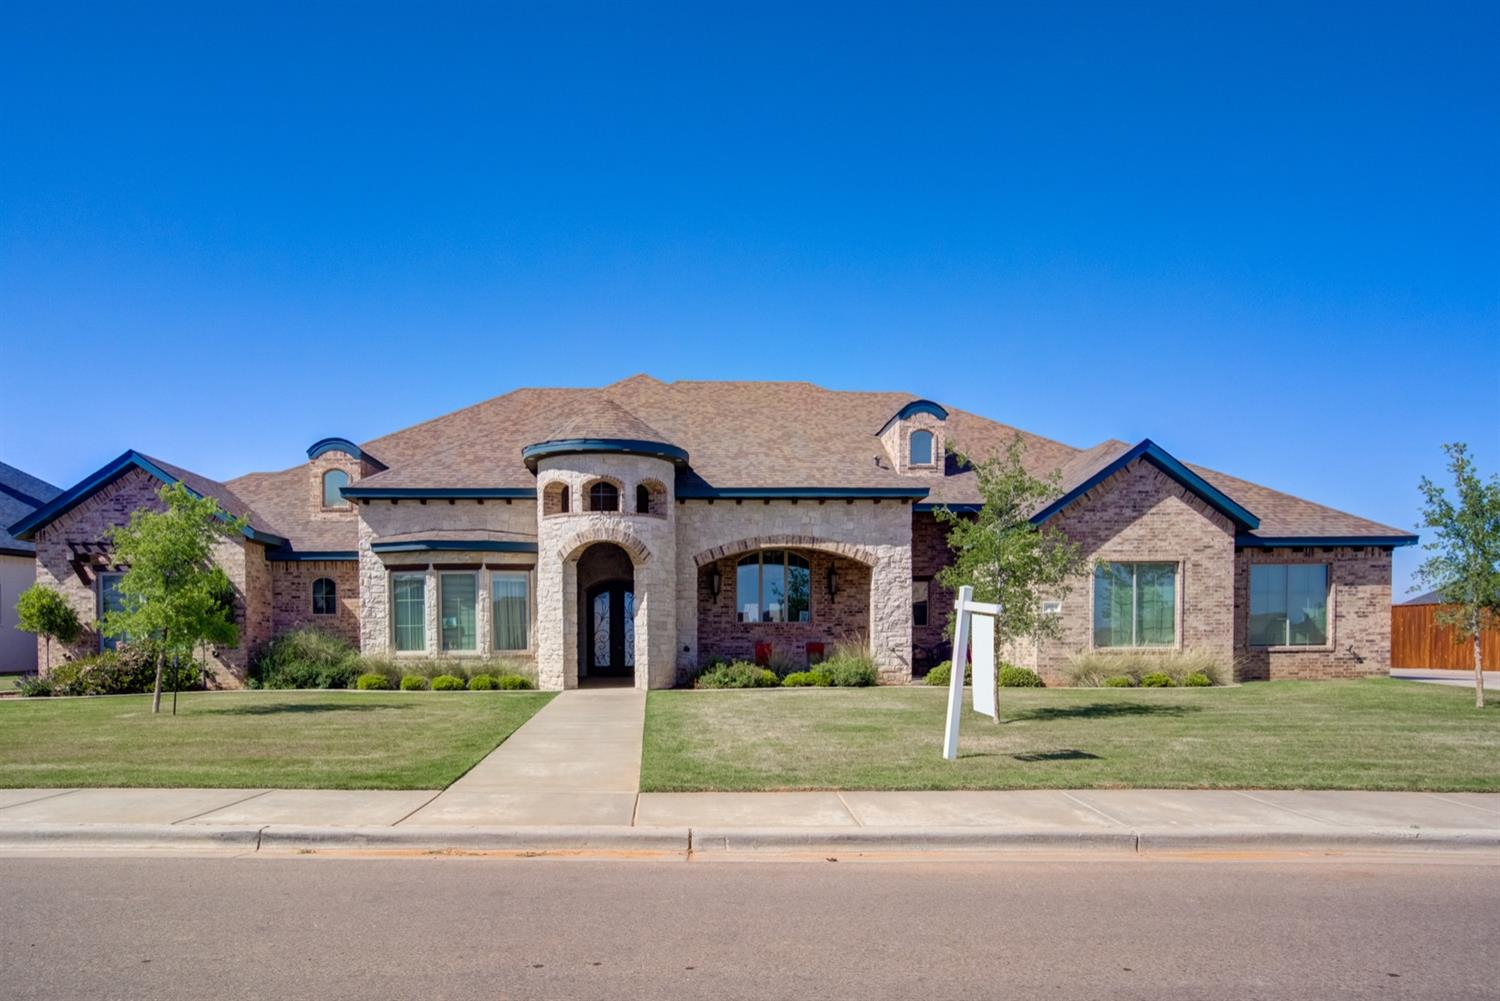 Stunning Parade Home located in the Estates at Kelsey Park.  This home offers all the custom features the luxury buyer desires all on a half acre lot in award winning Lubbock Cooper ISD.  The brick and stone exterior with cedar accents welcomes you to a dramatic entry way and an open concept floorplan designed for entertaining.  You'll find wood floors, soaring ceilings with beams and custom finishes throughout. The dream kitchen boasts two islands, double ovens, gas cooktop, working pantry and entertainment bar.  The living area offers a cozy fireplace with sweeping views of the outdoor living.  An isolated Master suite offers a retreat complete with fireplace, spa-like Master bath and huge closet with safe room.  Each additional bedroom offers an en-suite bath.  A private study is tucked away near the well appointed laundry room.  The outdoor space is perfect for enjoying sunsets or time with the family.  Additional features include a well and foam insulation to keep utilities low.